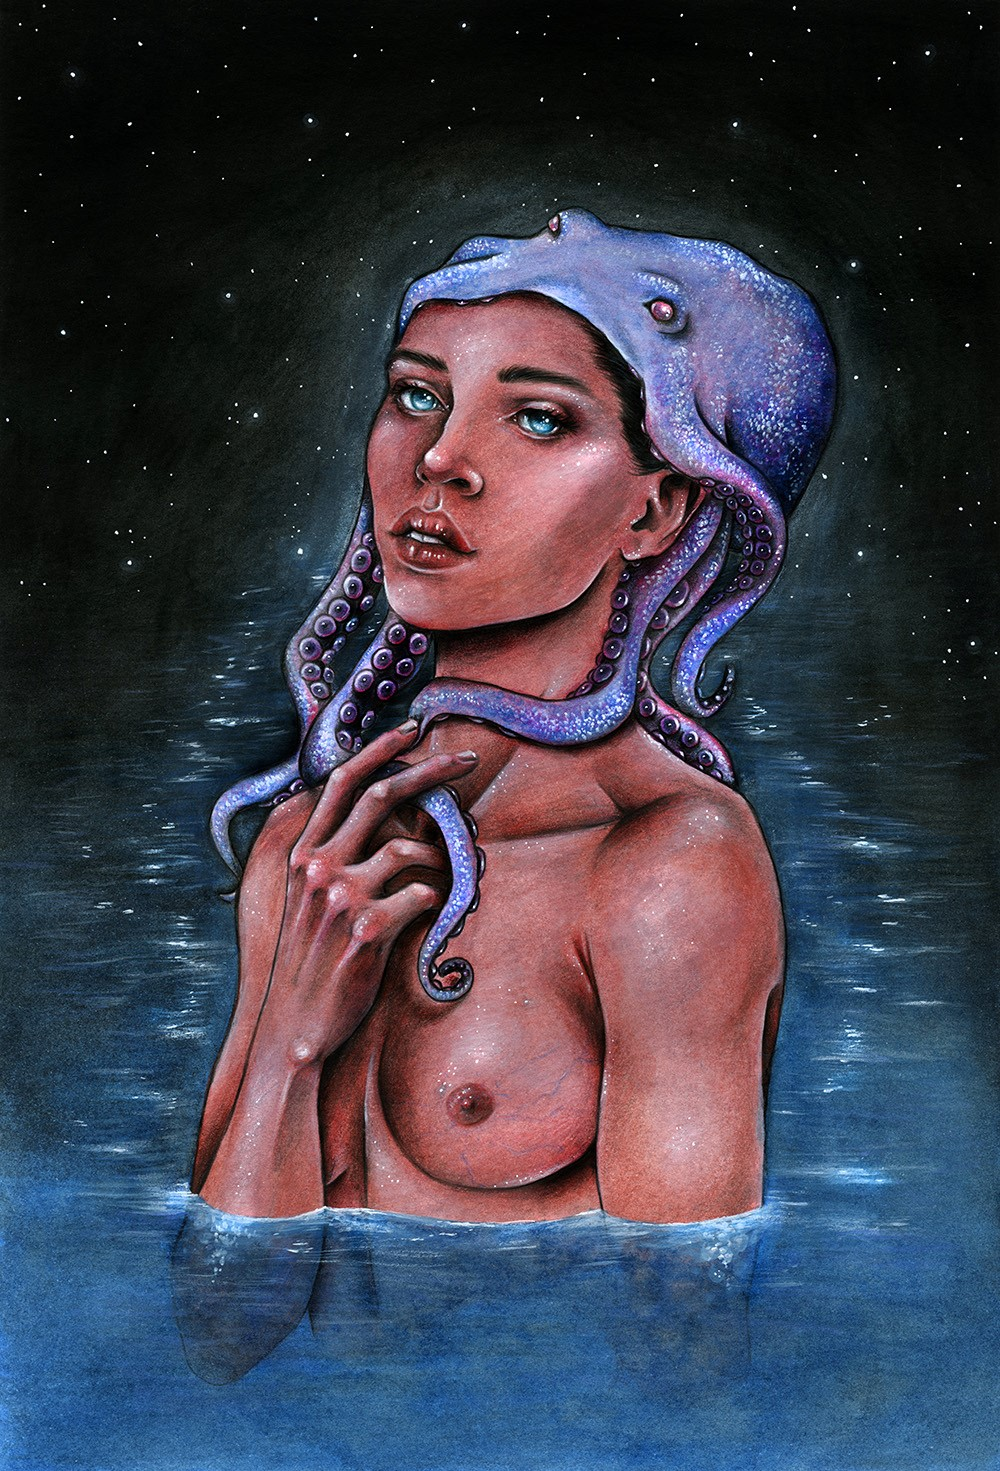 Midnight Depths - A Mermaid and Octopus Illustration